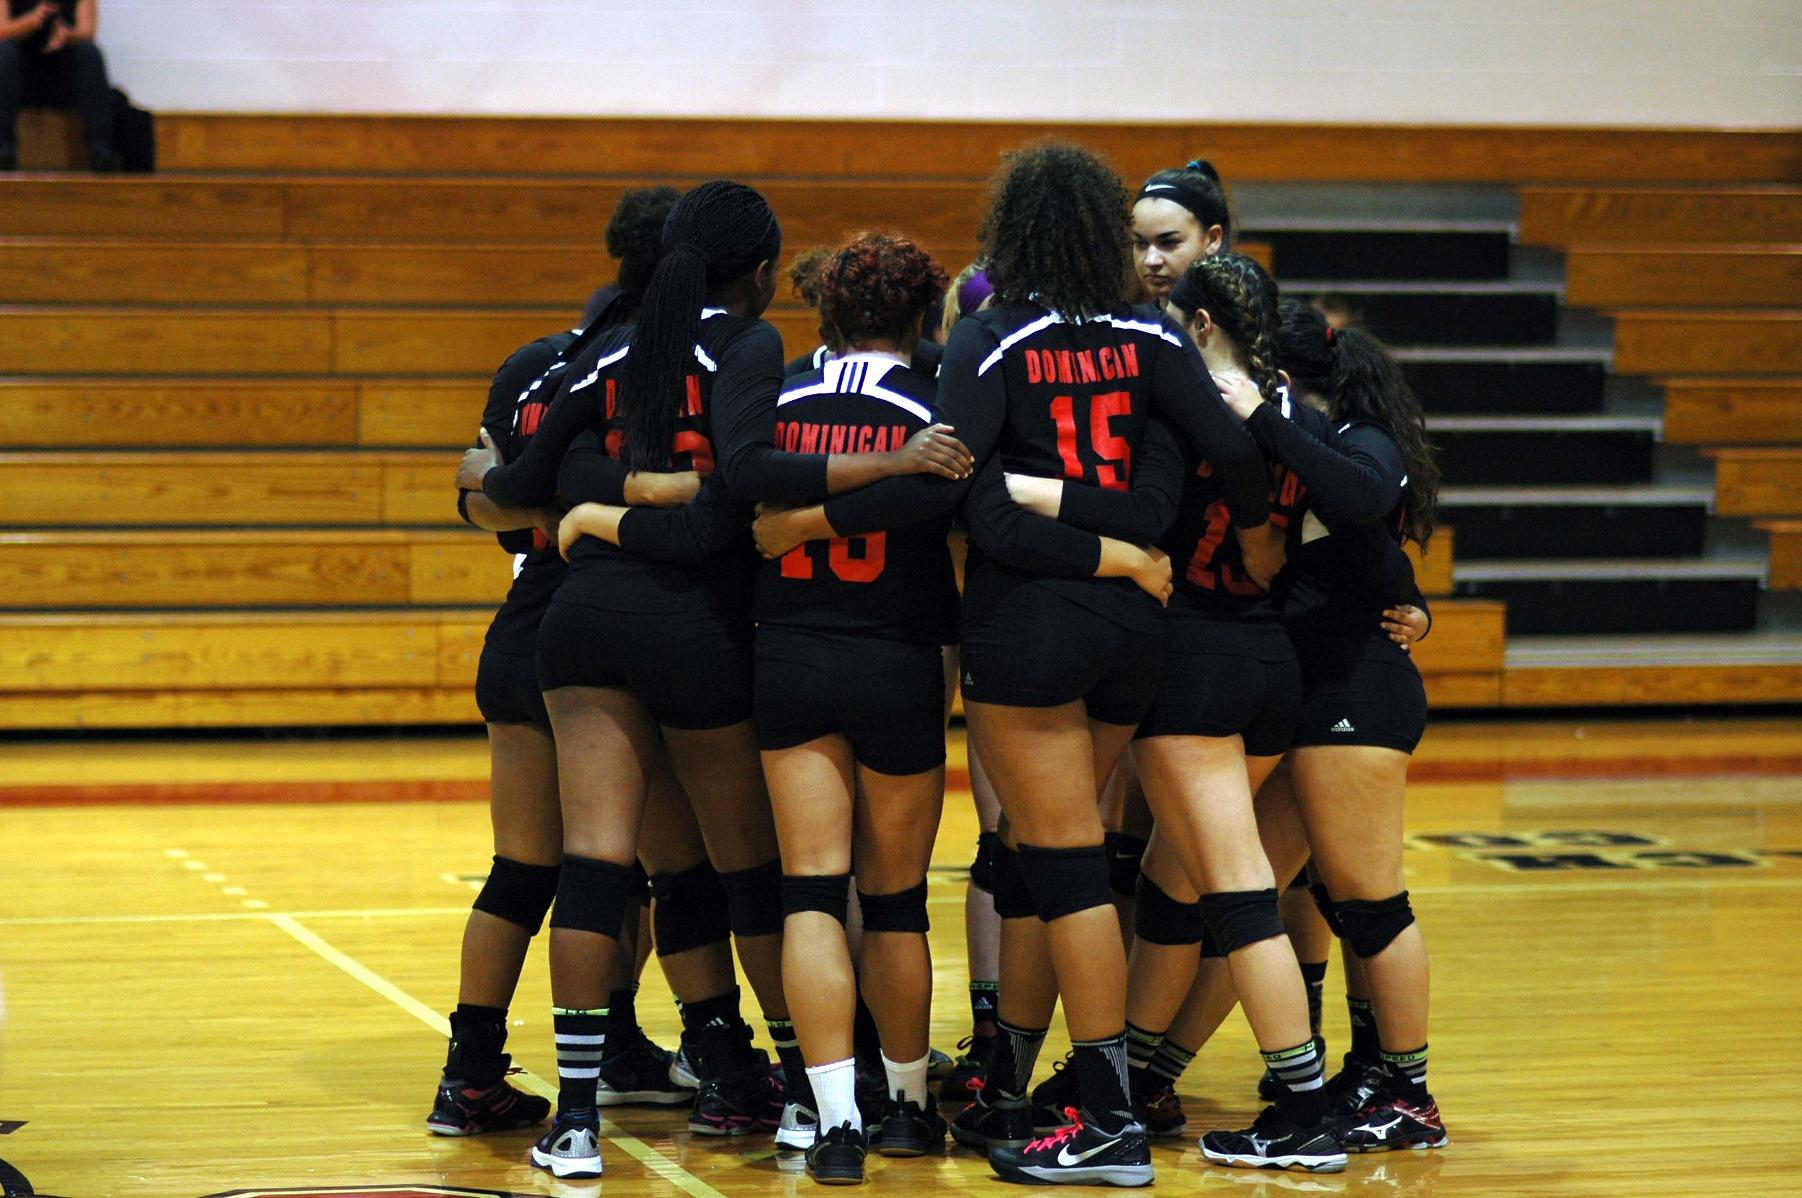 LADY CHARGERS DROPS NON-CONFERENCE MATCH TO BLOOMFIELD COLLEGE